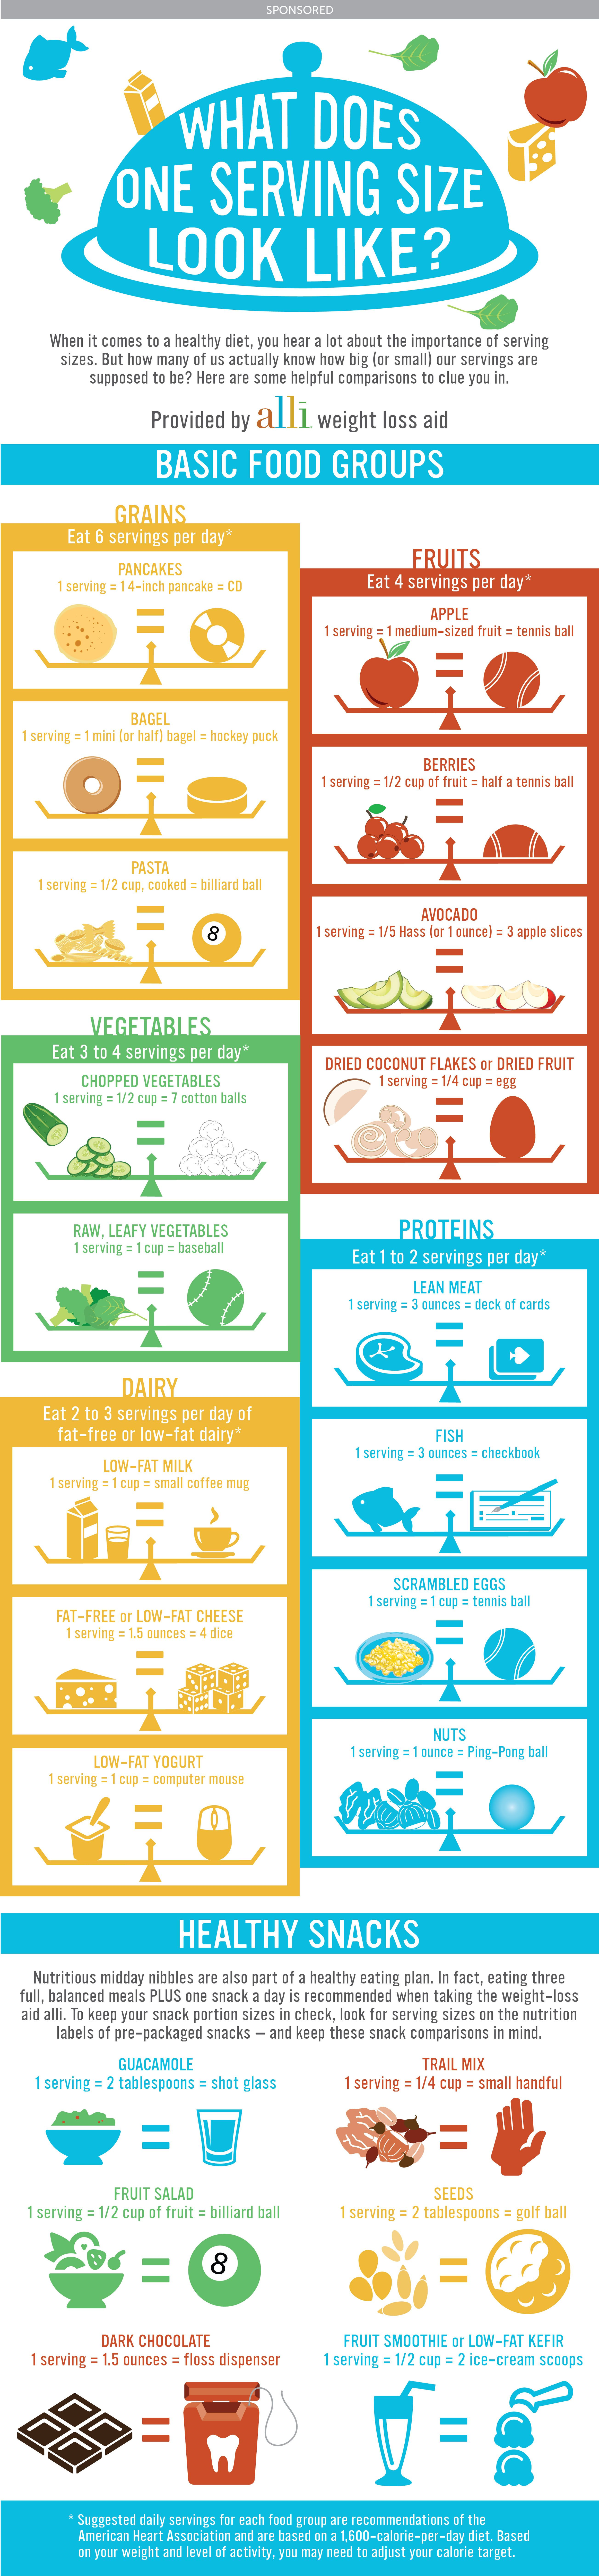 Get Wise About Serving Size